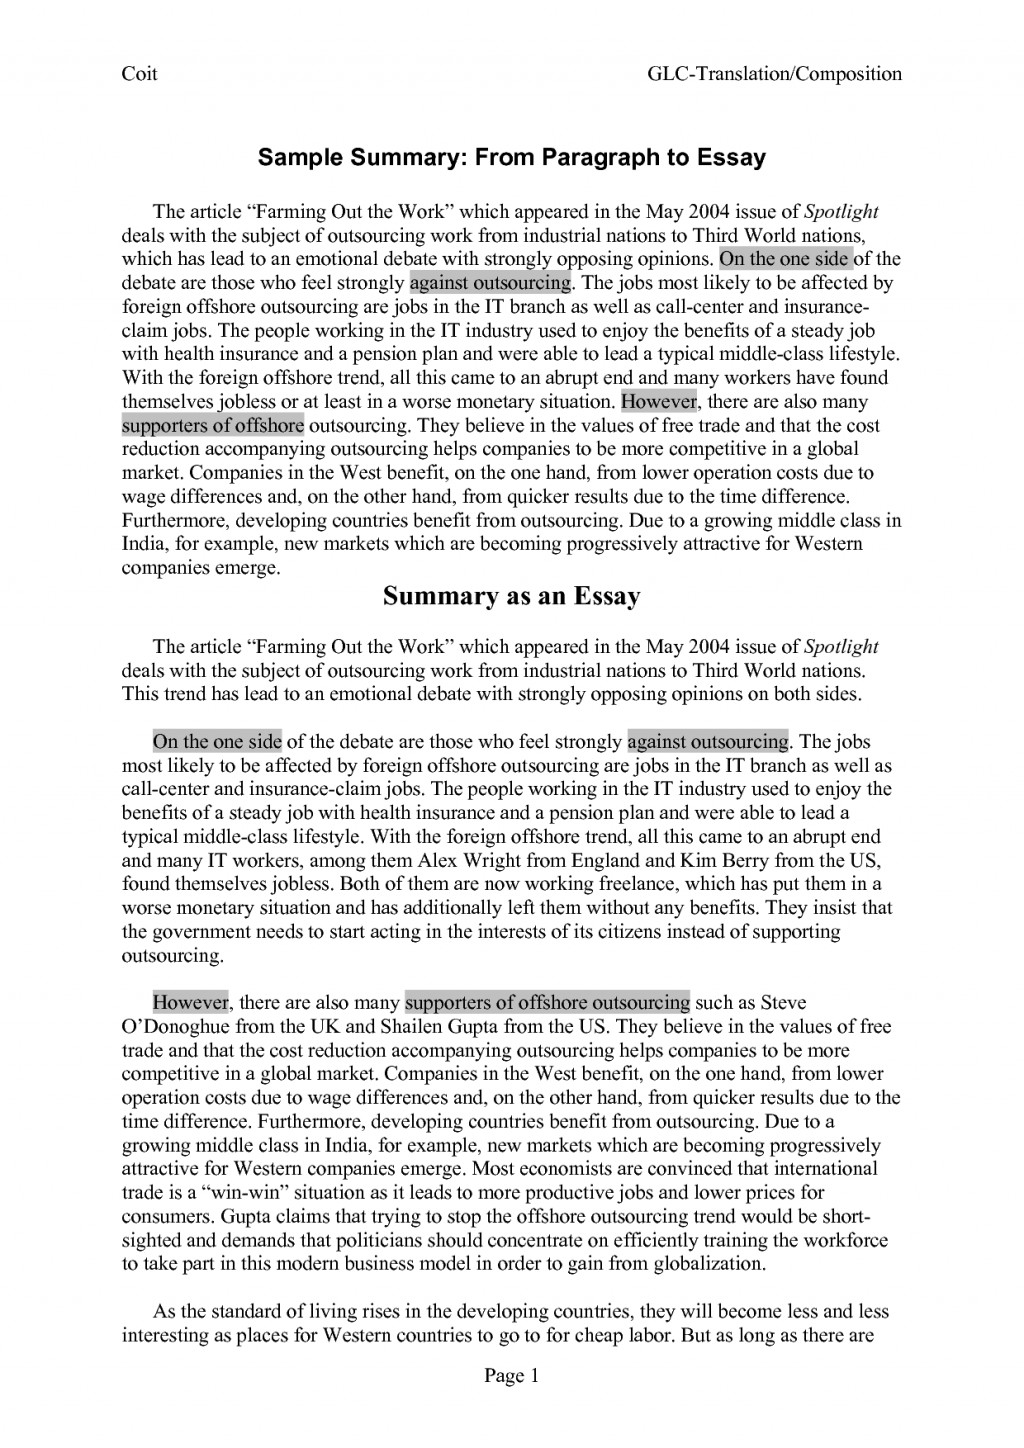 001 Sample Essay Summary Papers 248300 Astounding Executive Definition Paper Topics Response Format Large